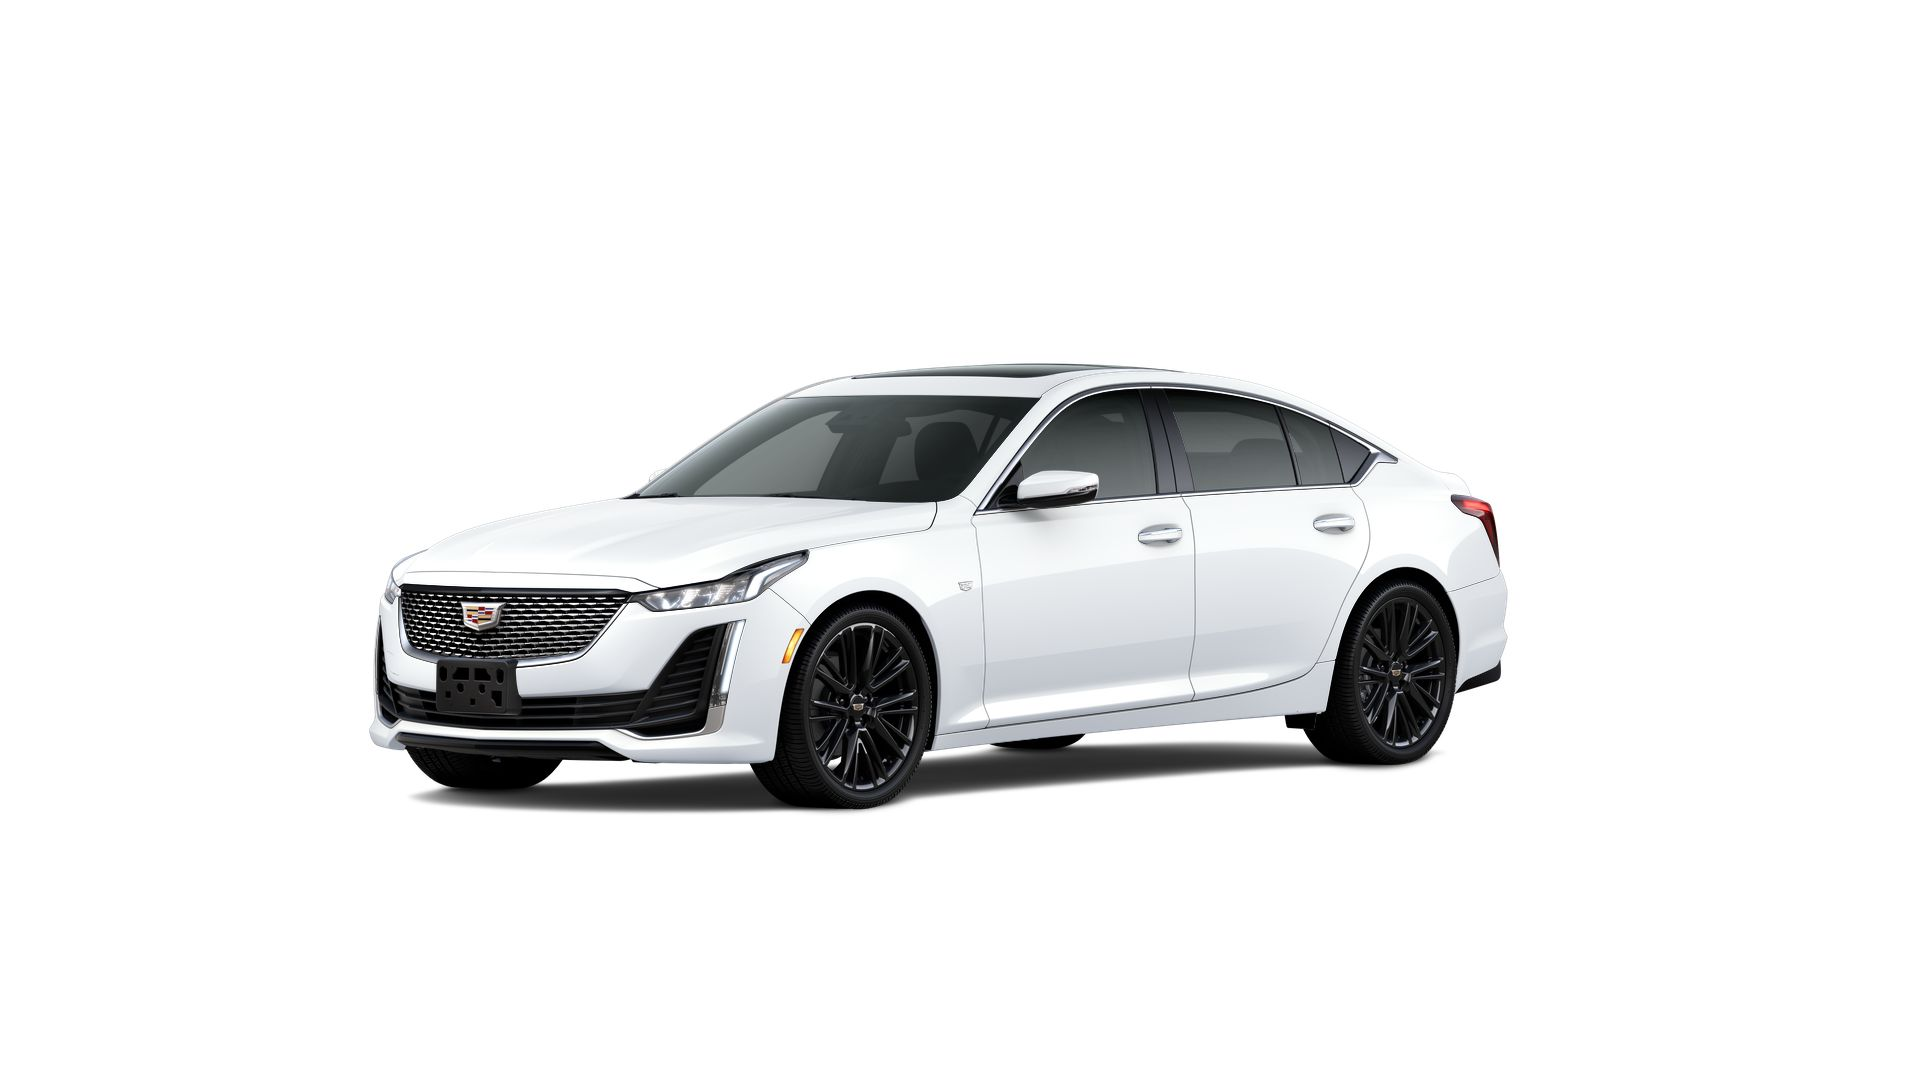 2021 Cadillac CT5 Premium Luxury